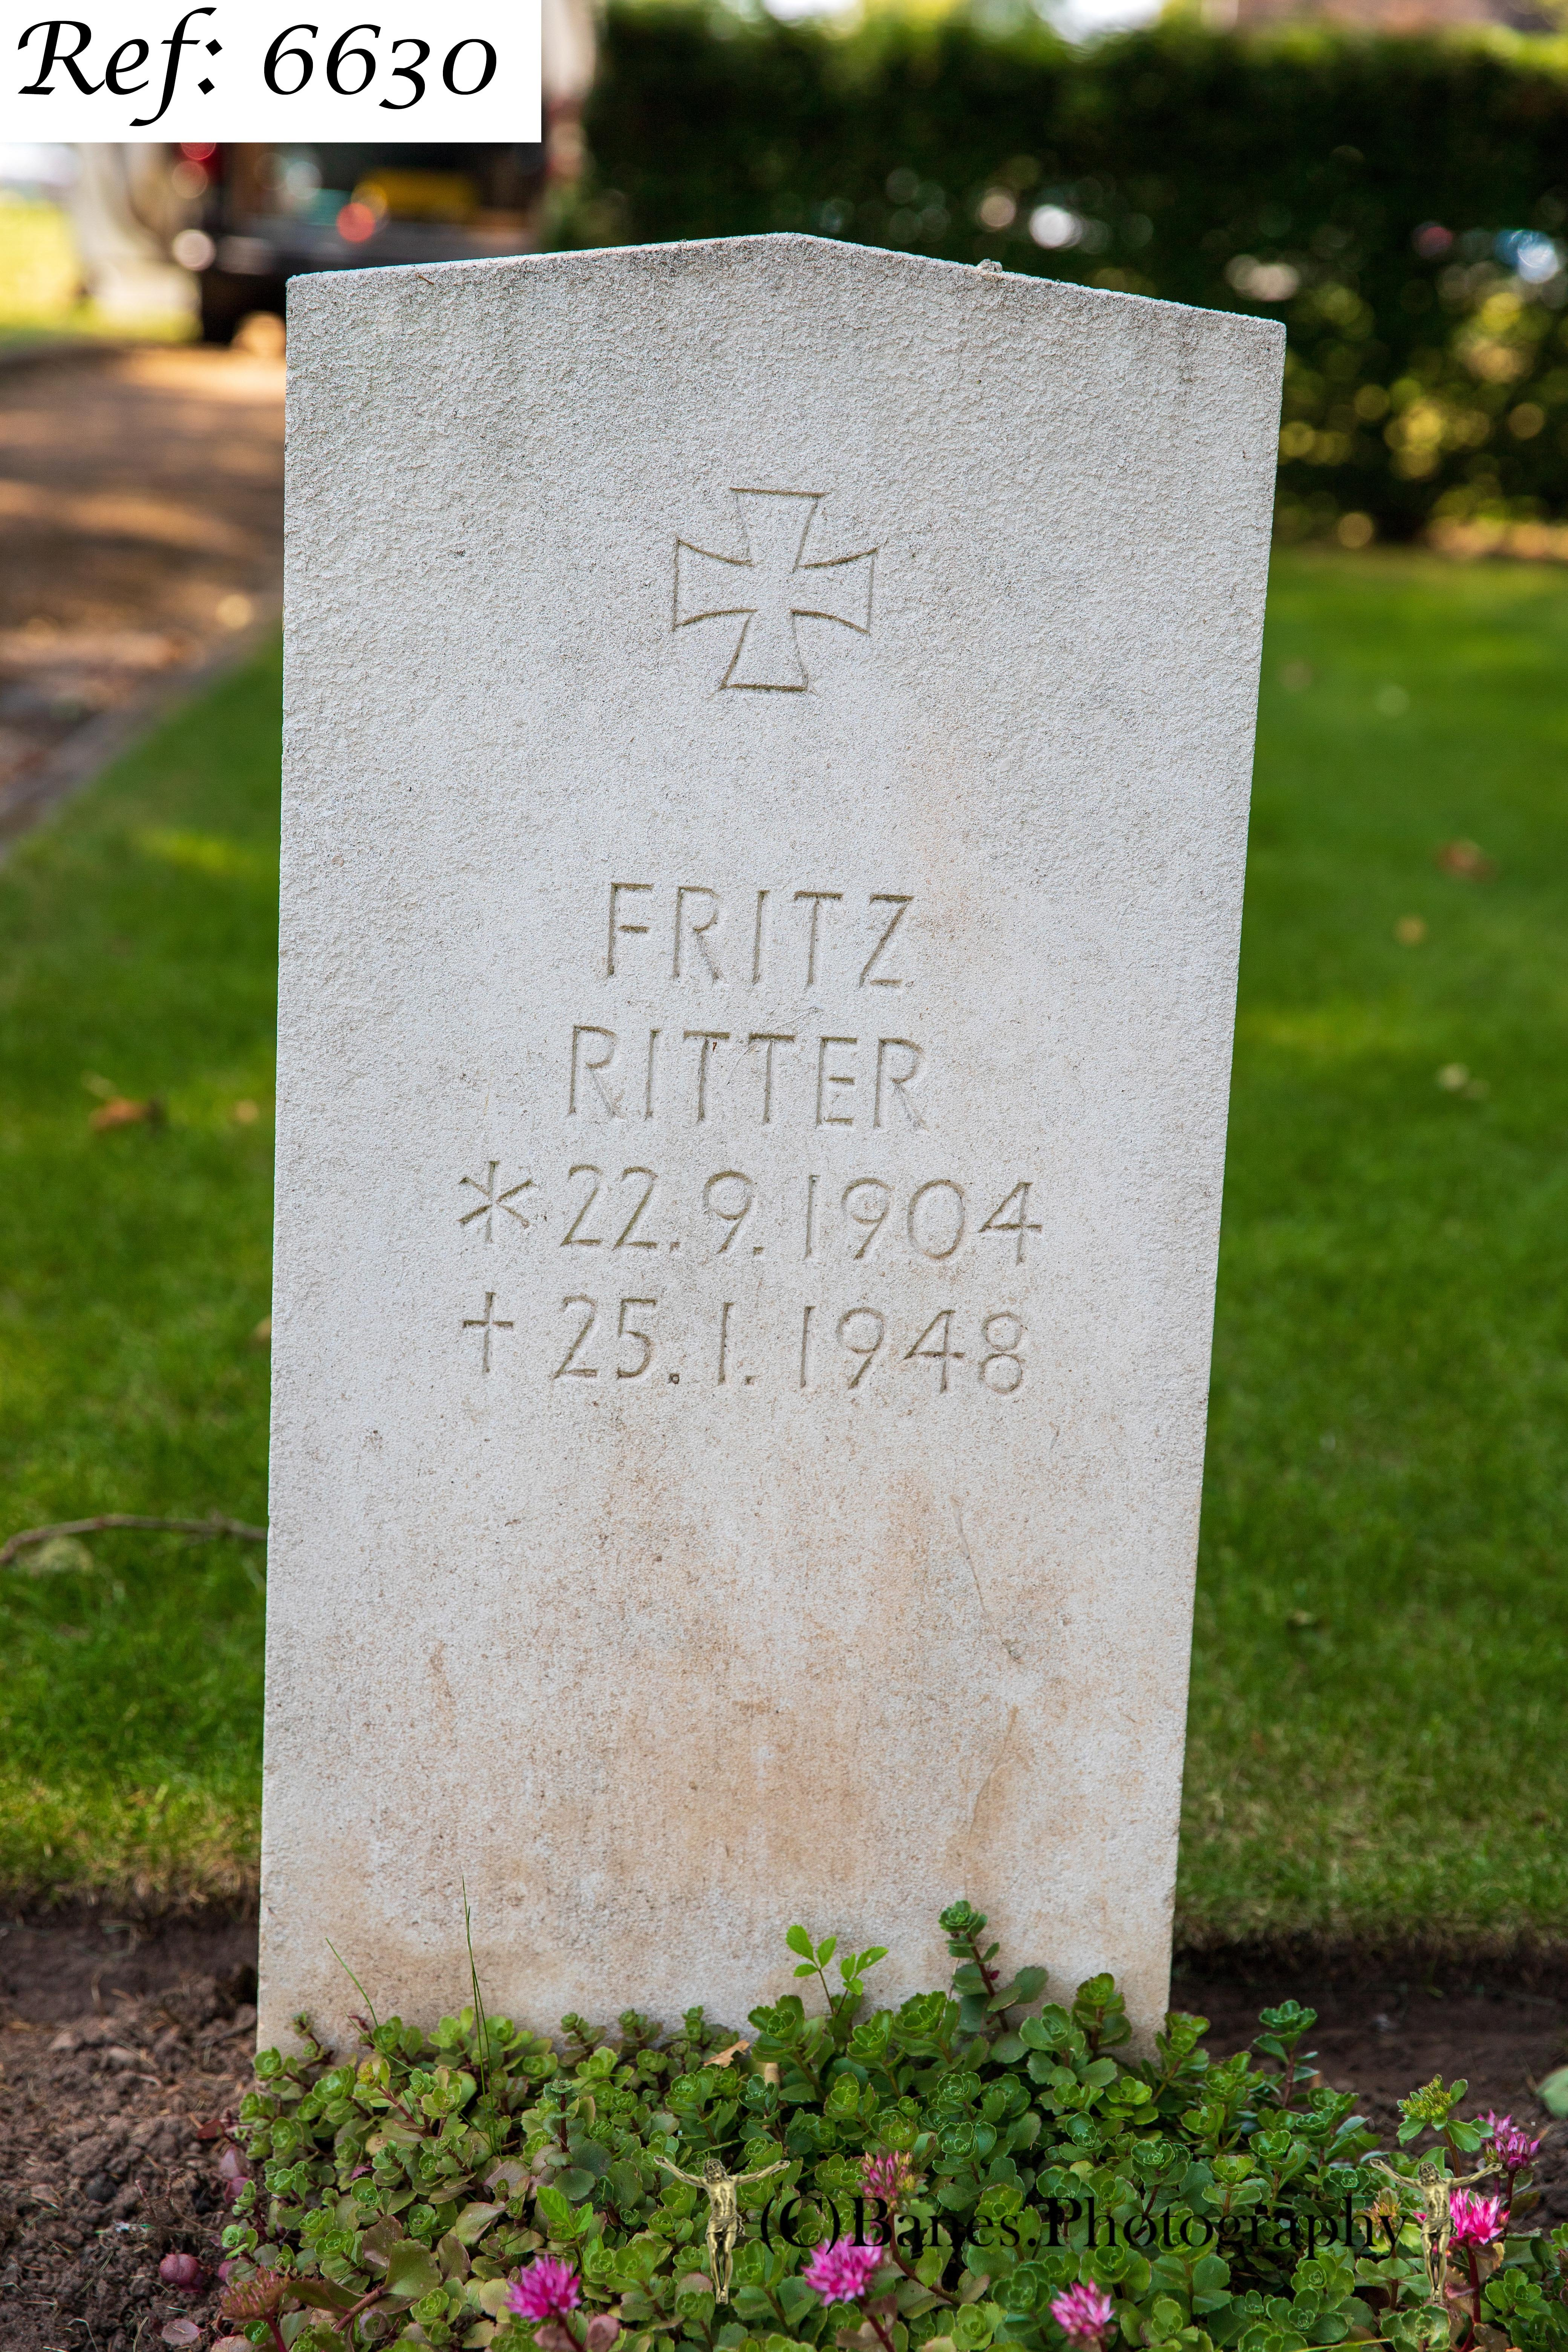 Ritter, Fritz, Beachley Military Cemetery (Web 2 WM) Ref 6630